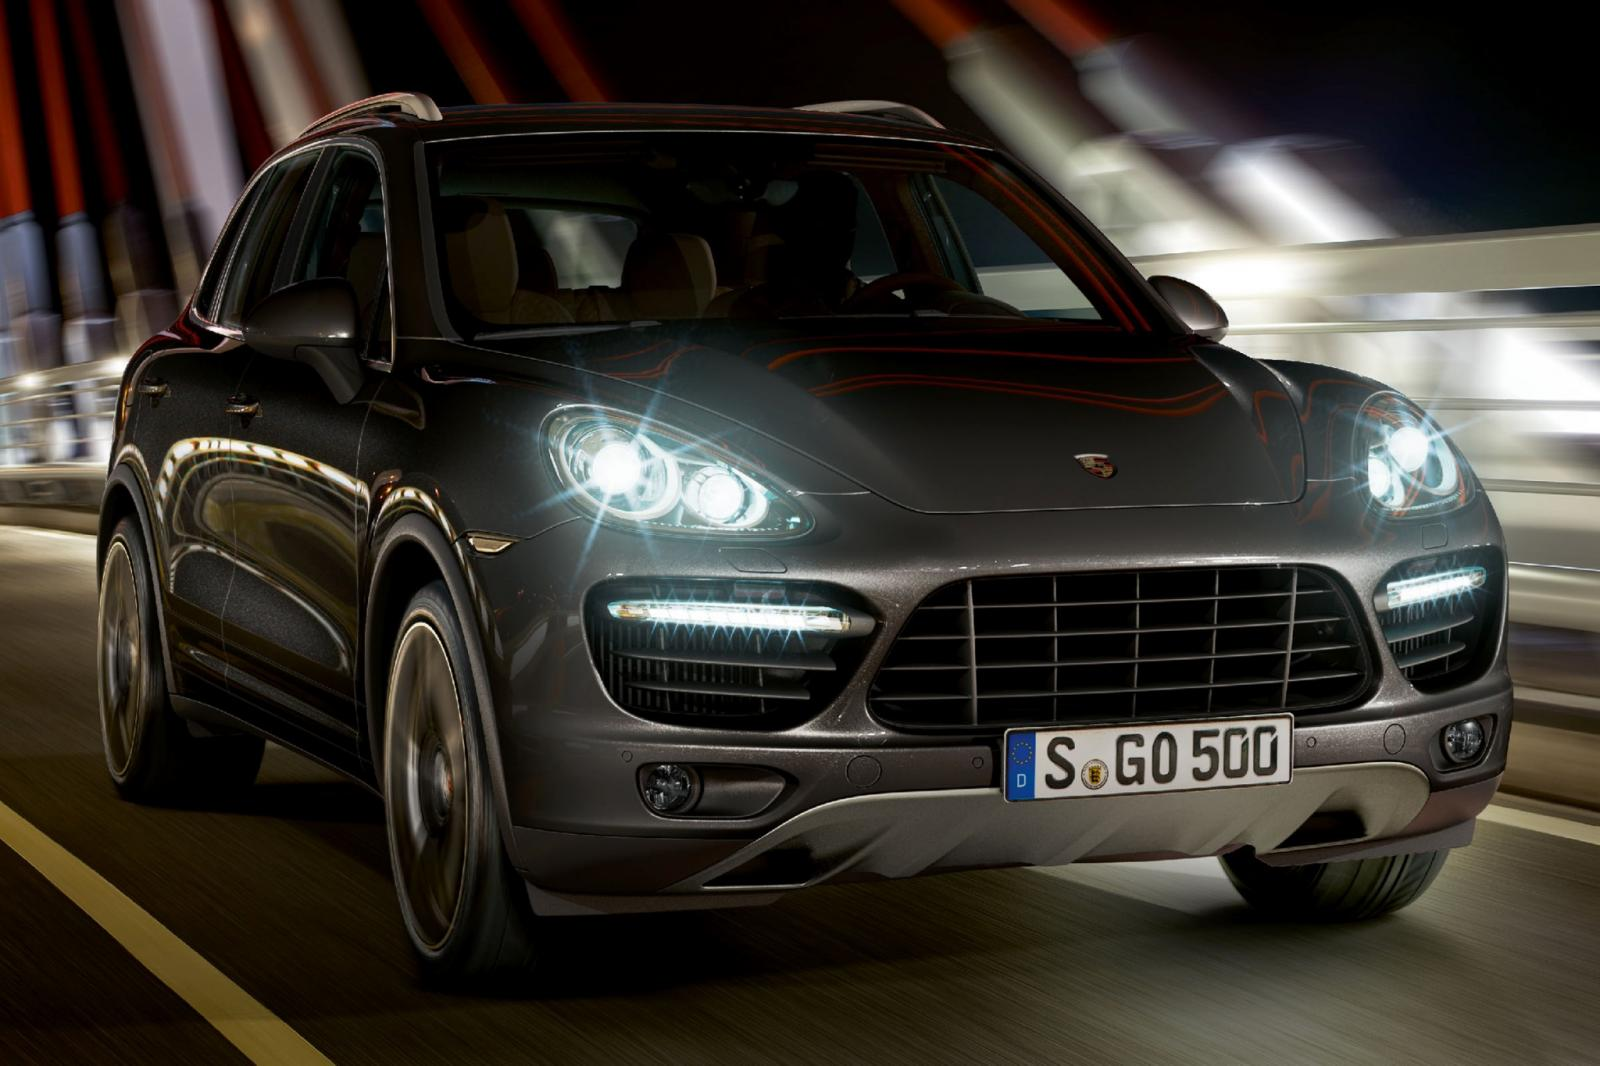 2013 porsche cayenne information and photos zombiedrive. Black Bedroom Furniture Sets. Home Design Ideas